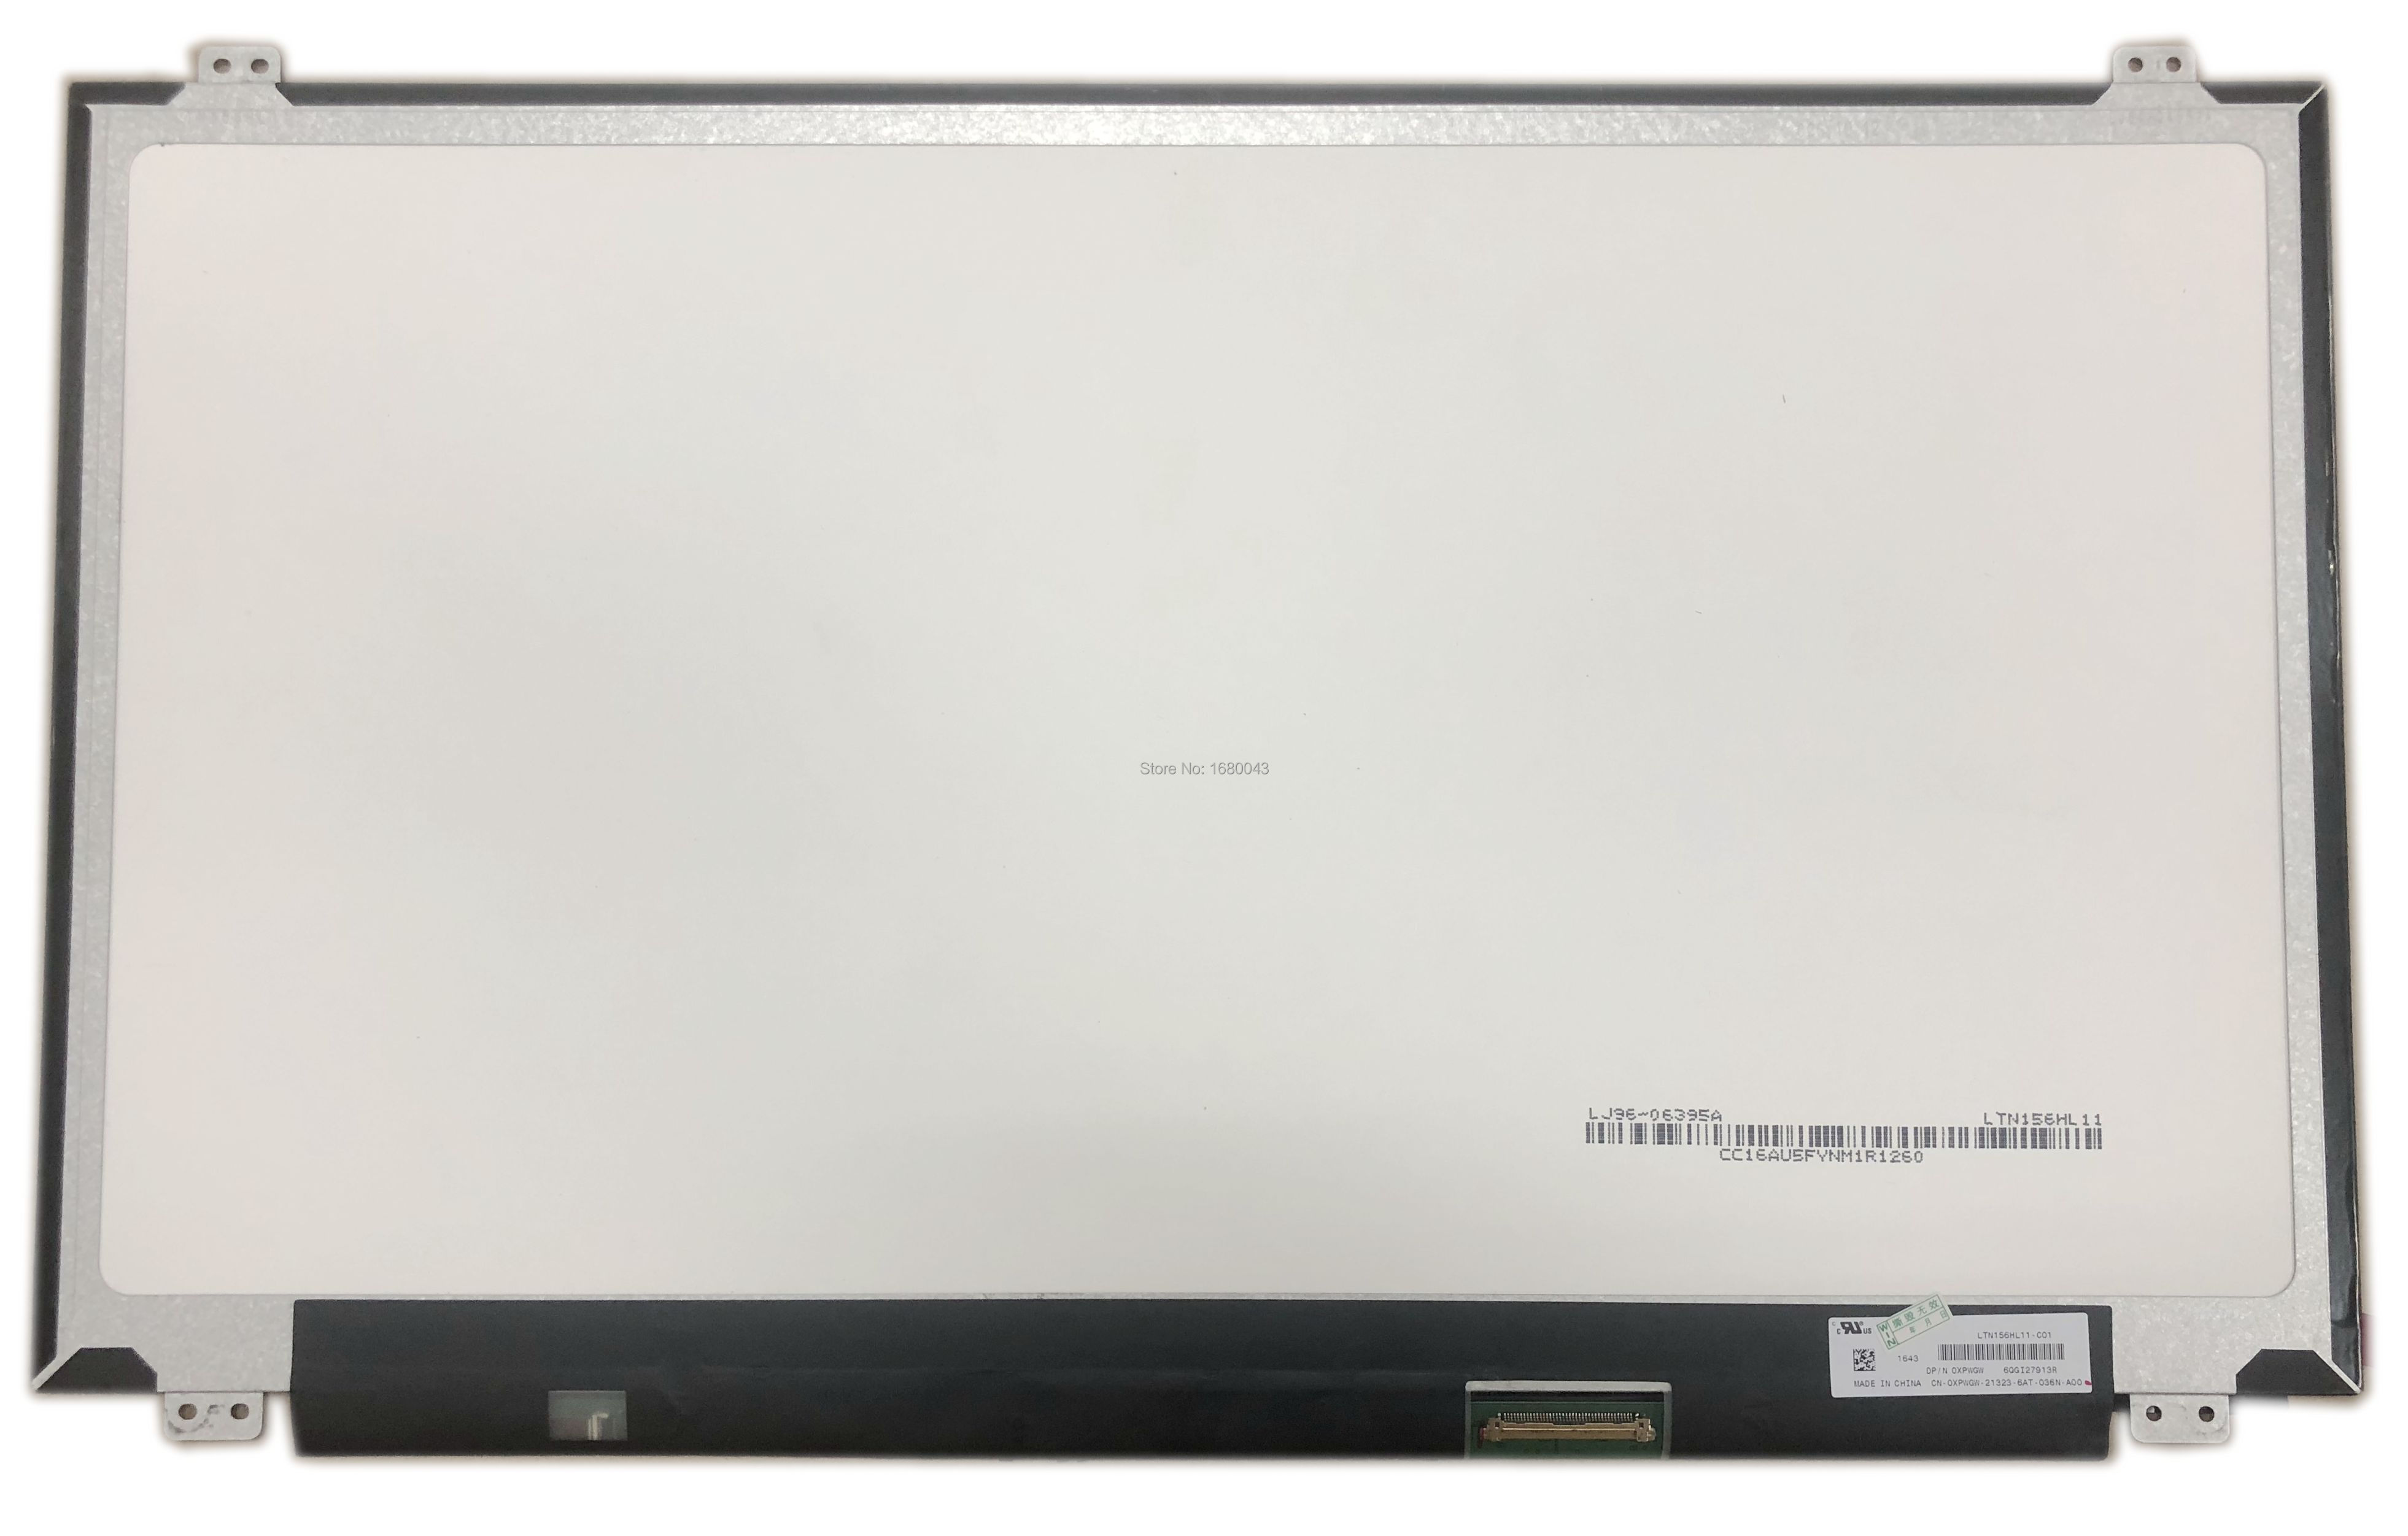 LTN156HL11-C01 LTN156HL11 15.6 IPS for DELL laptop LCD SCREEN eDP 40 pins 1920*1080 vga hdmi lcd edp controller board led diy kit for lp116wh6 spa1 lp116wh6 spa2 11 6 inch edp 30 pins 1lane 1366x768 wled ips tft